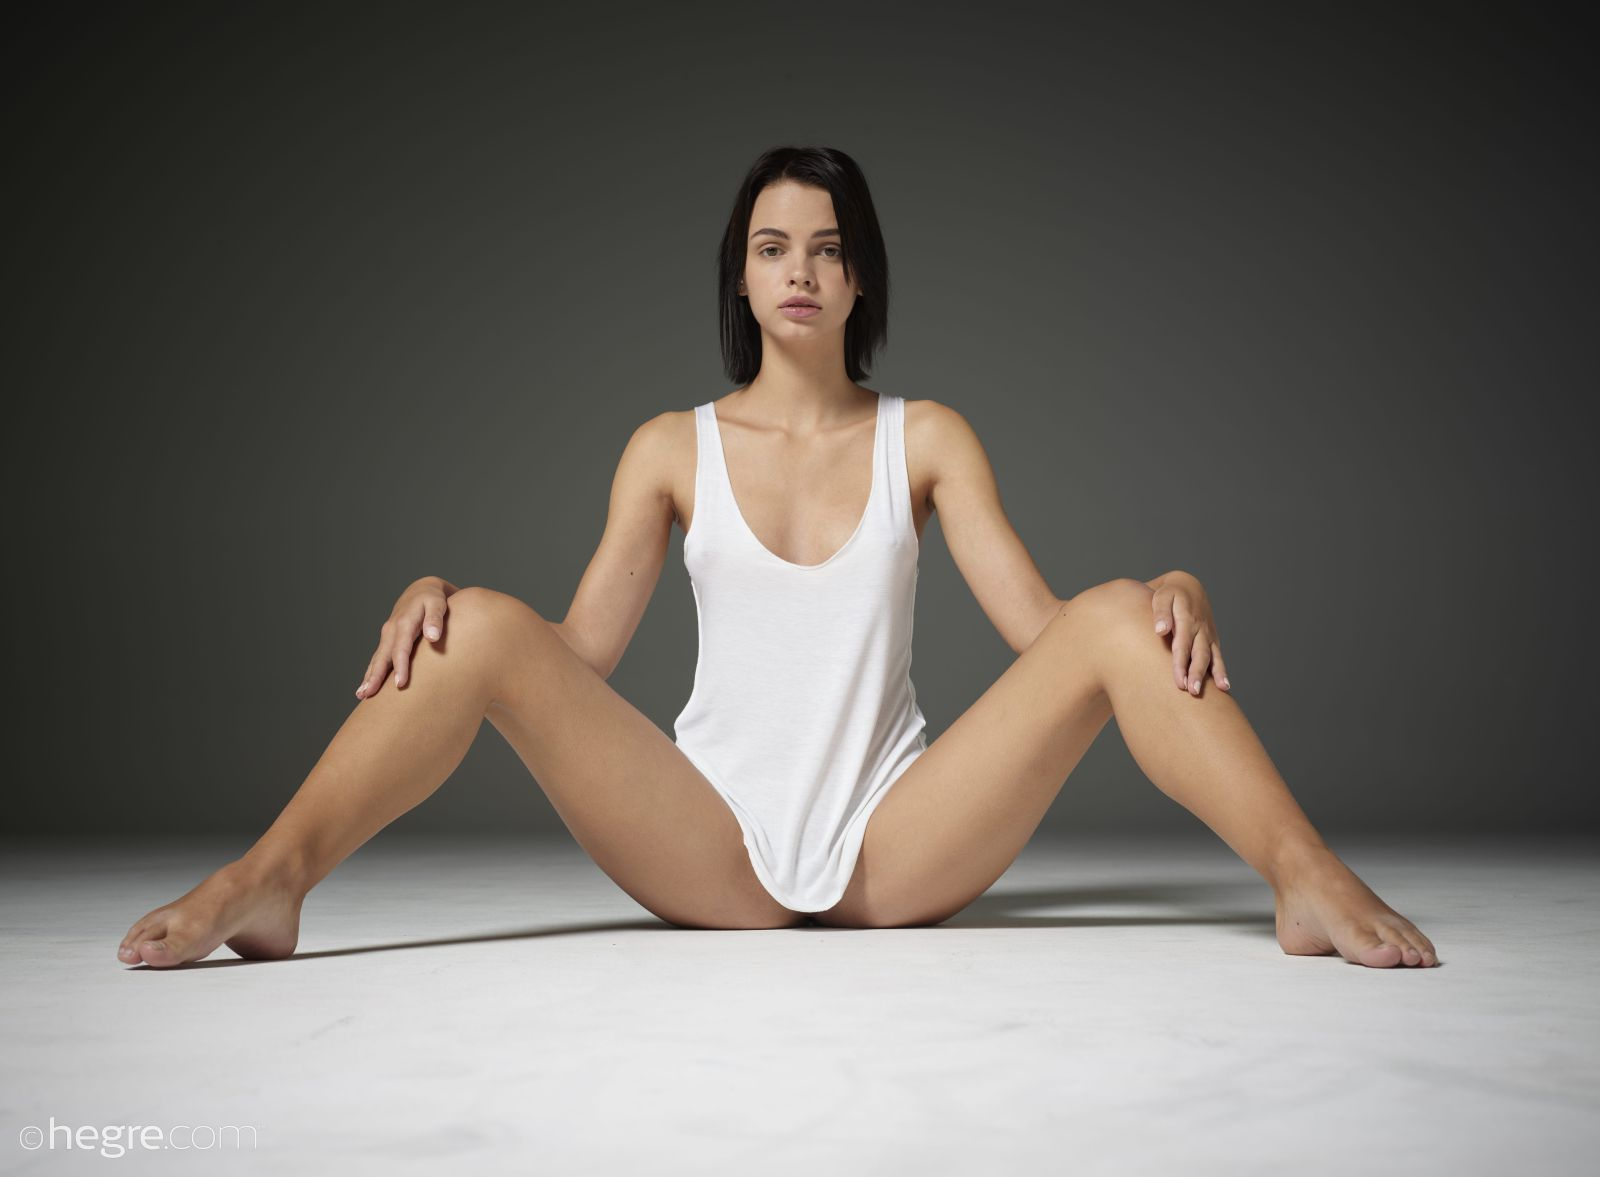 Nude High Res Nude Hegre Pics